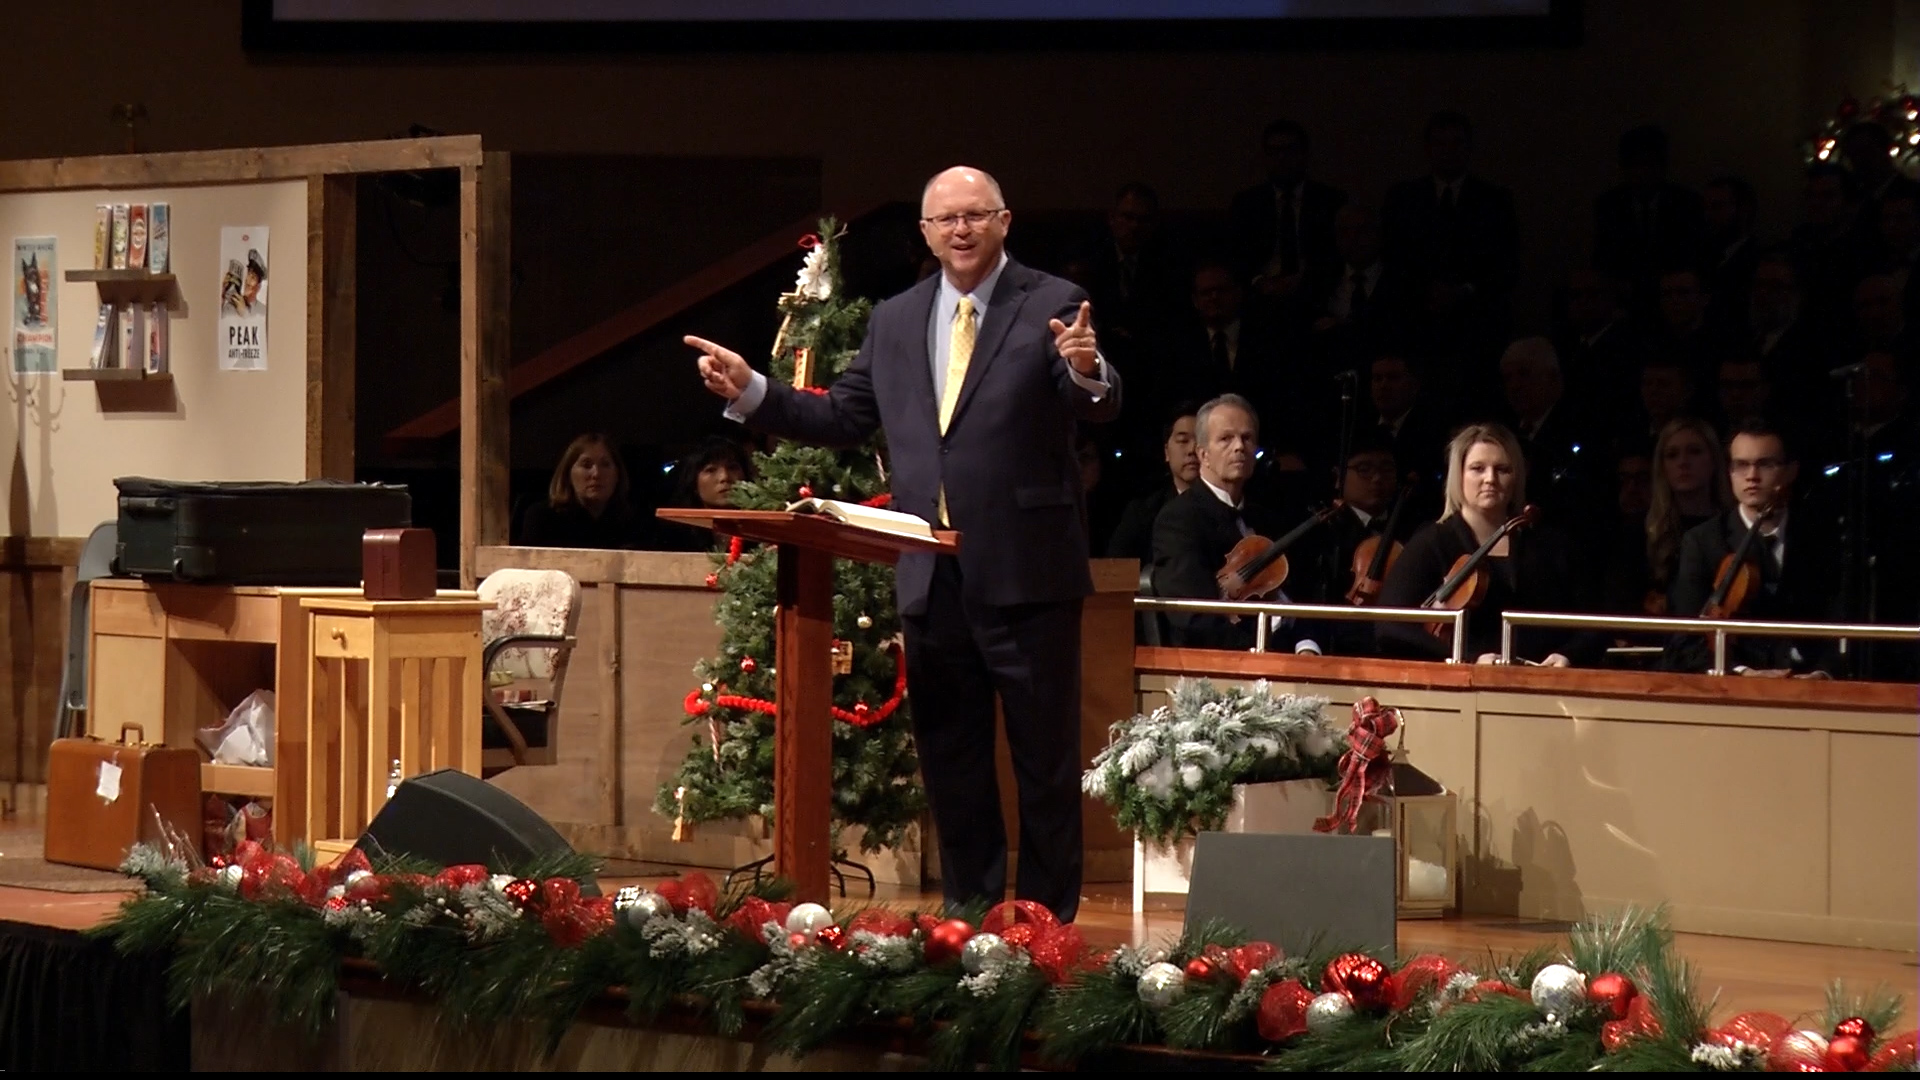 Pastor Paul Chappell: The Journey of Christmas